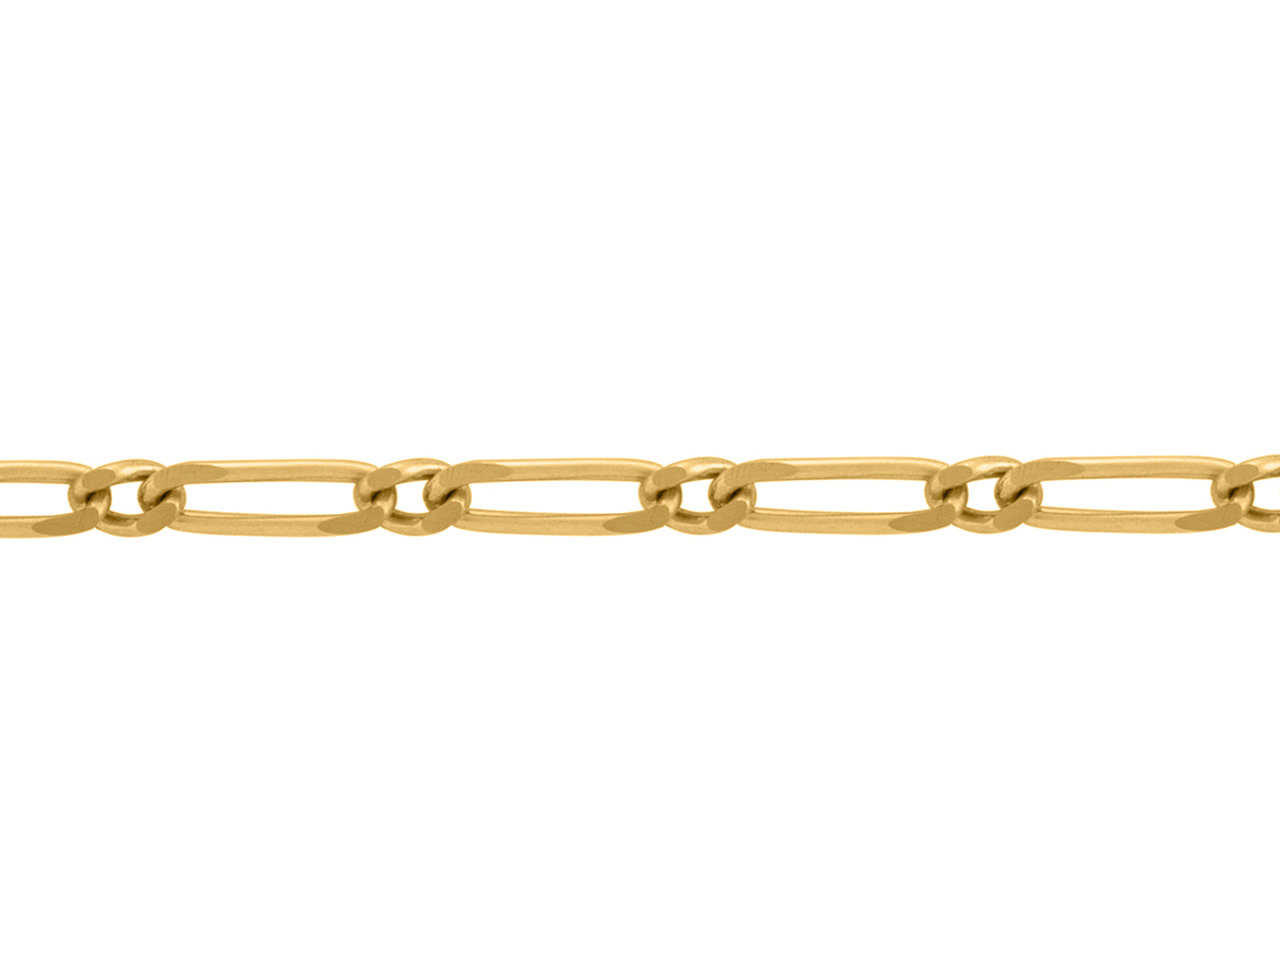 Chaine Figaro alternée 1/1, 2 mm, Or jaune 18k. Réf. 00174